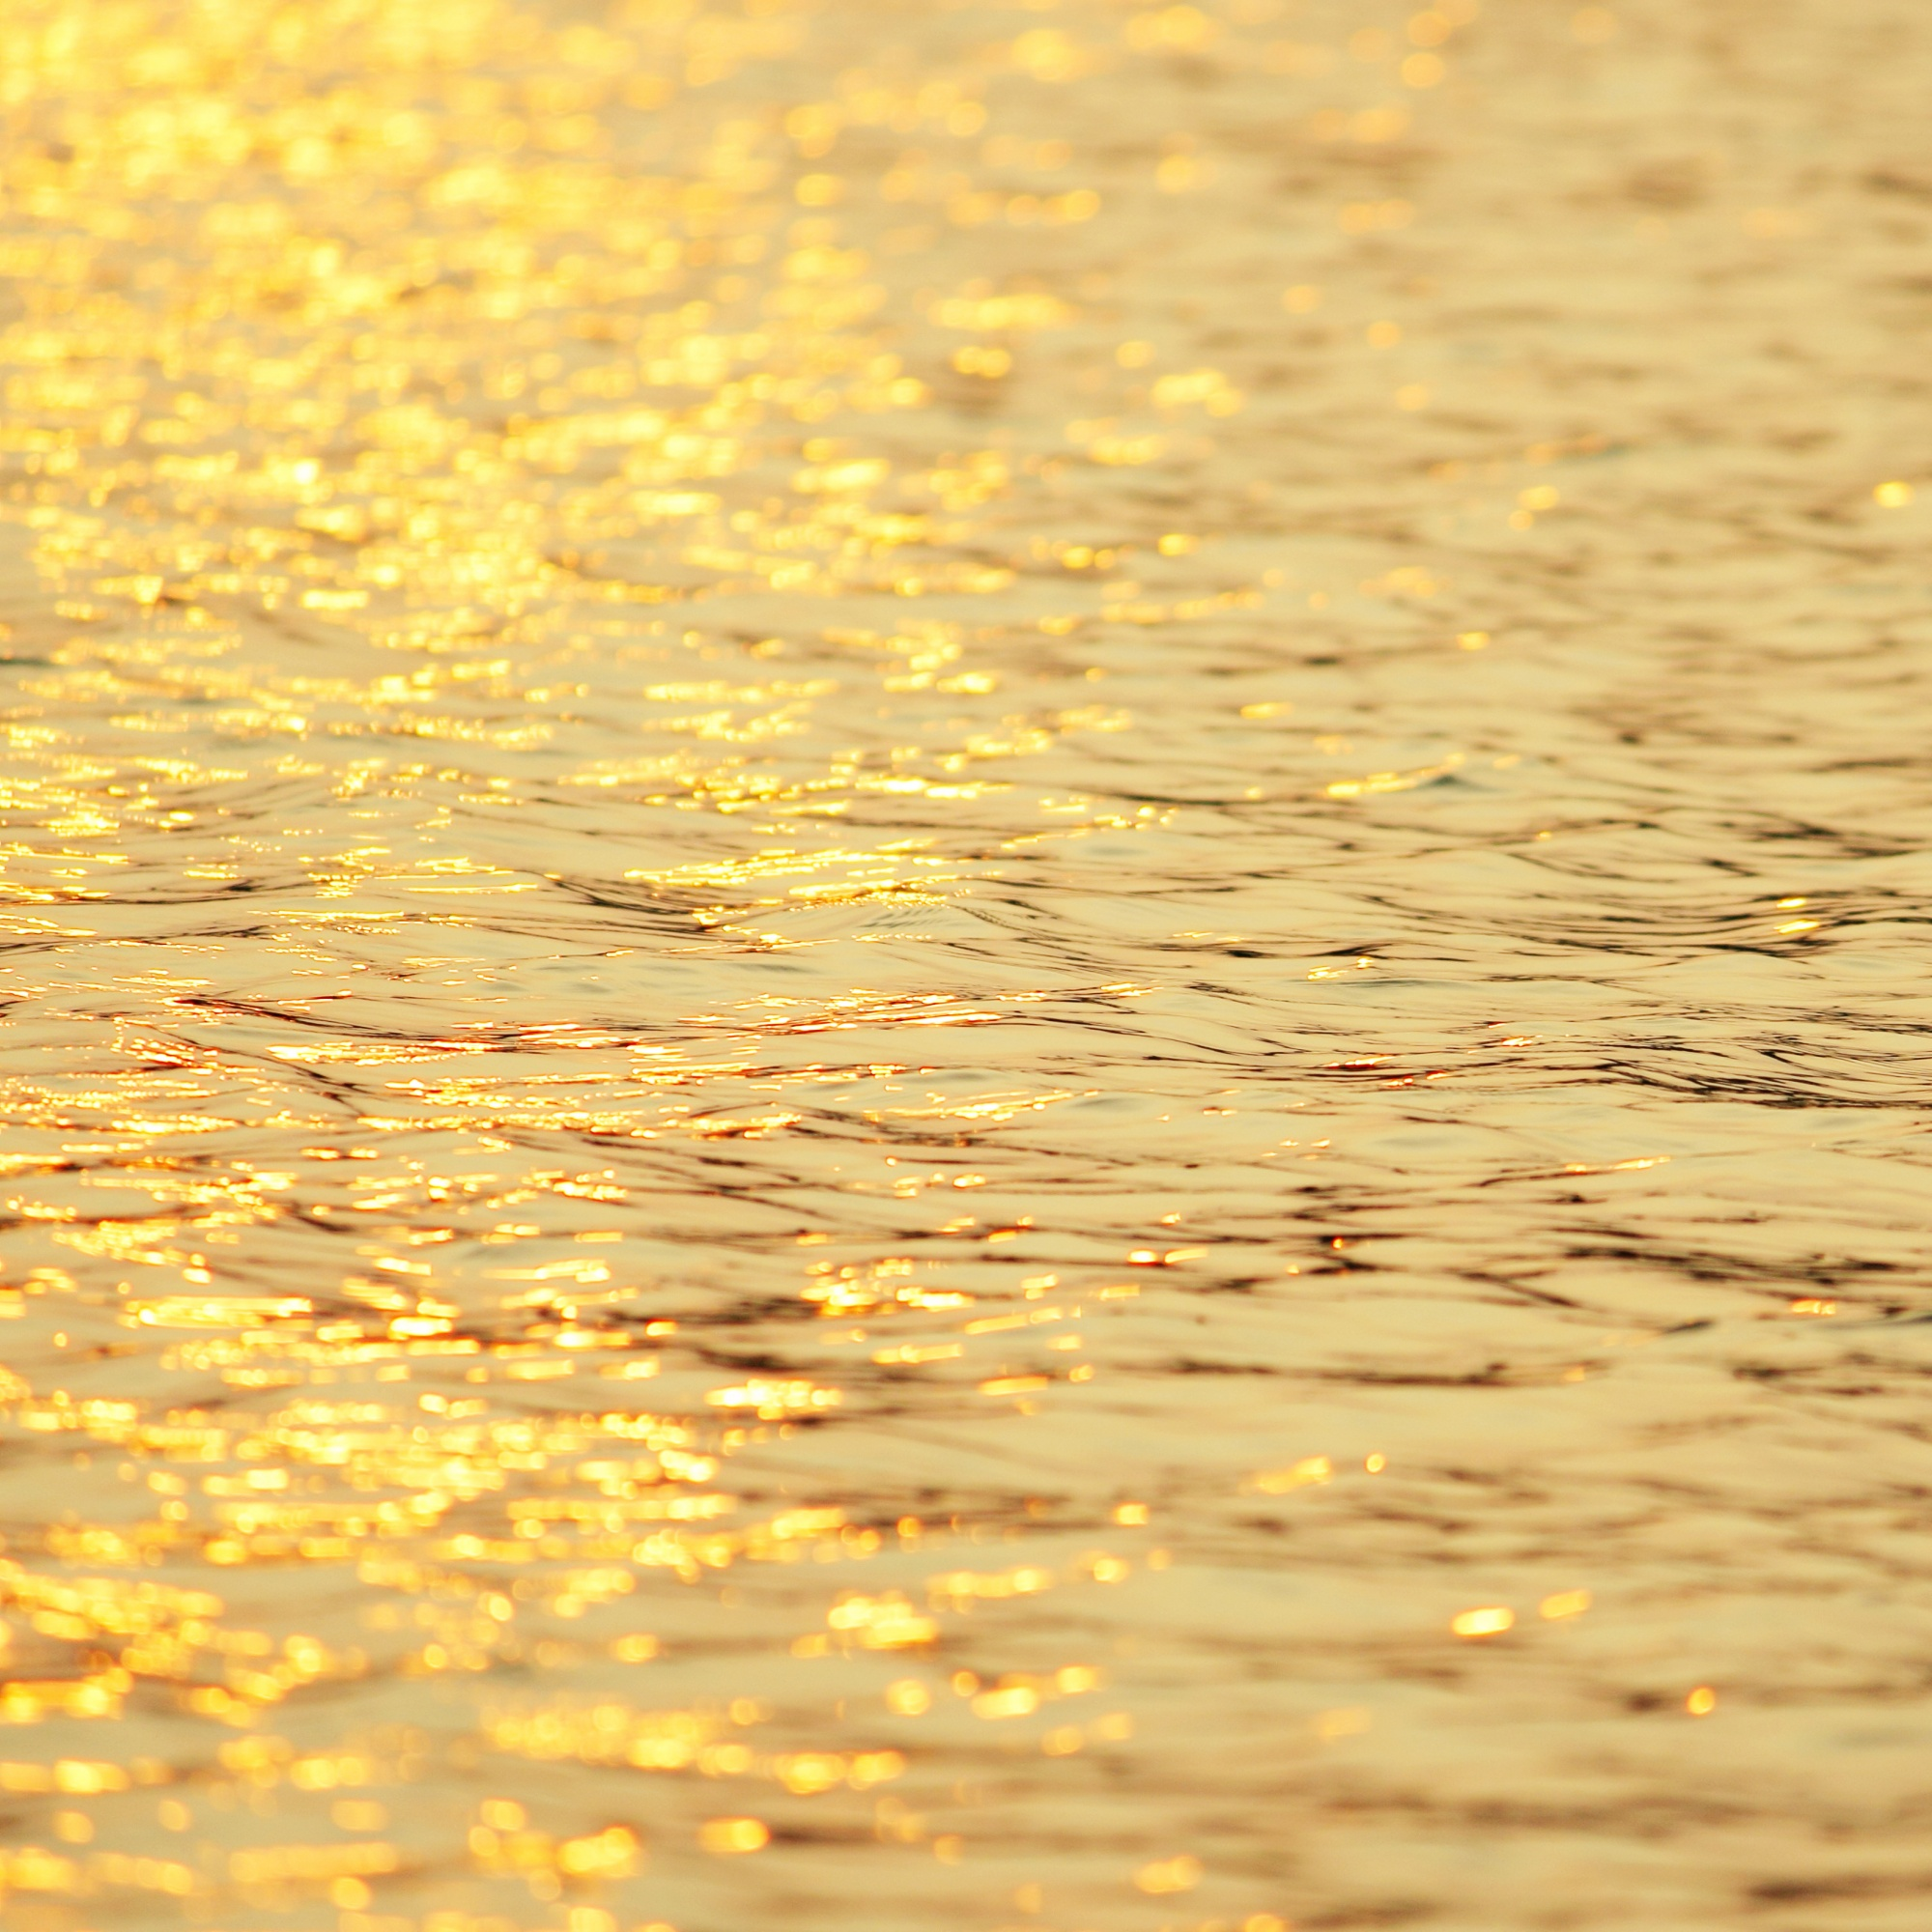 Abstract sunset in water reflection